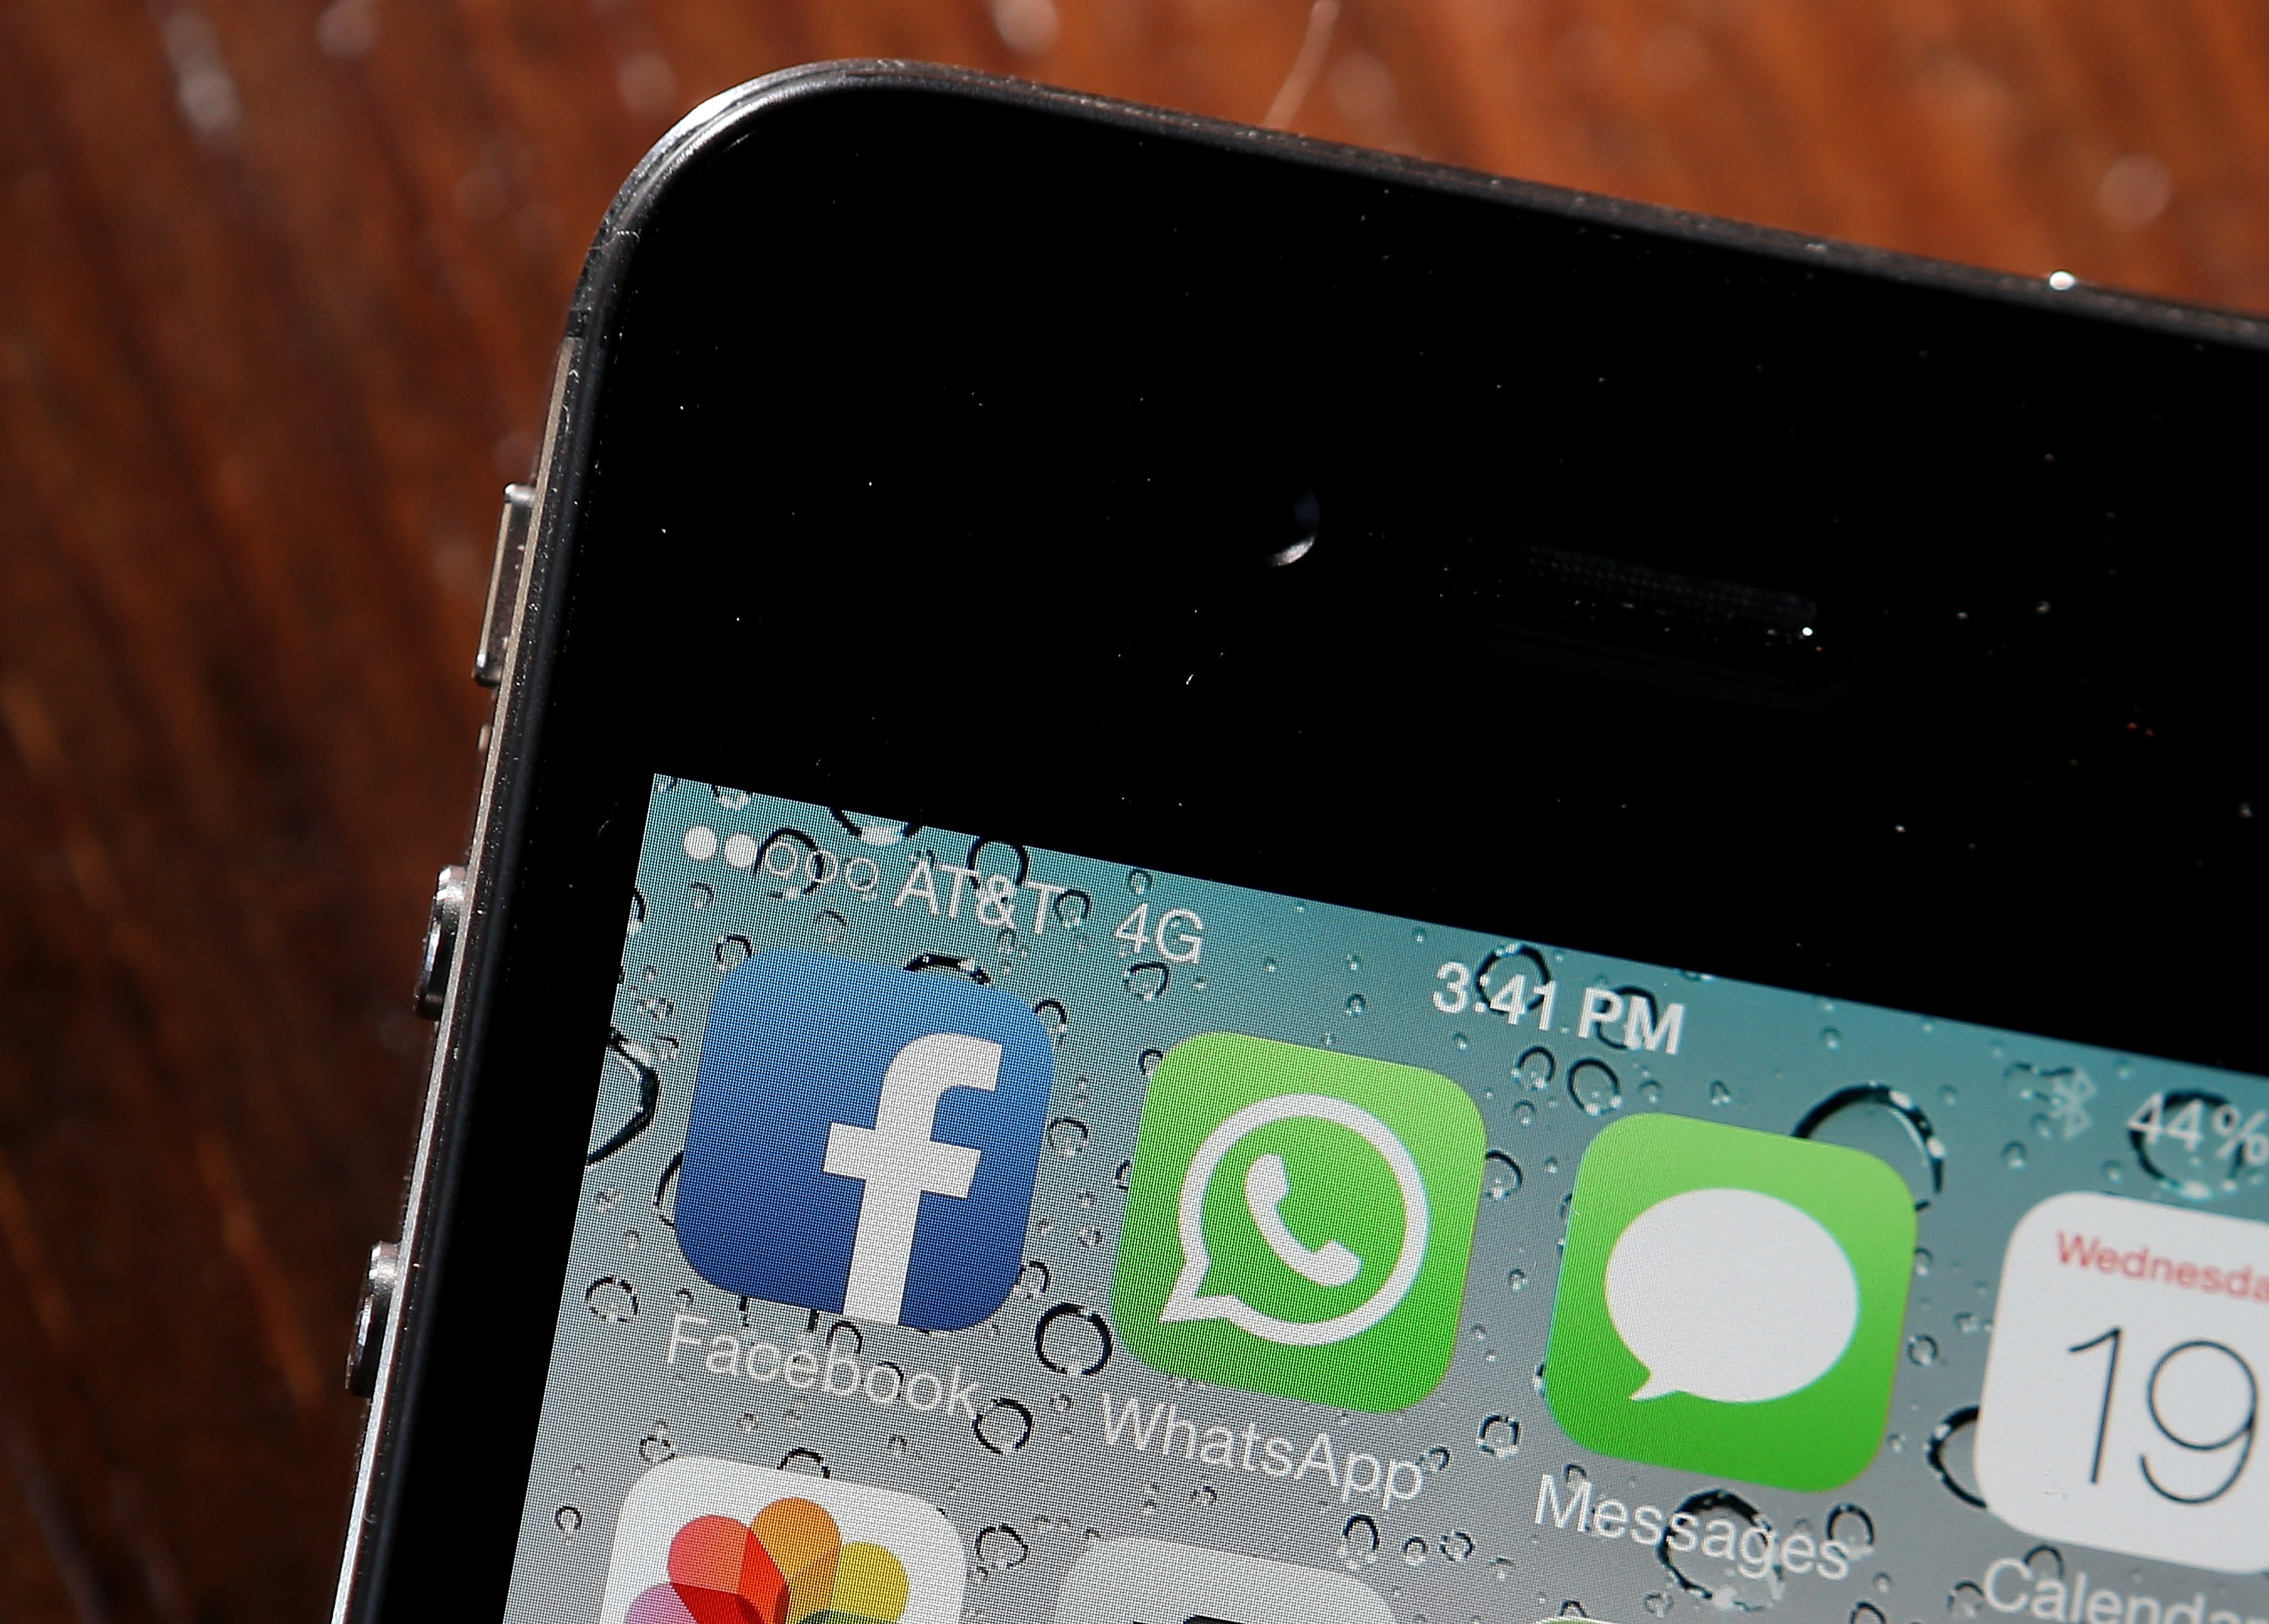 The WhatsApp purchase gives Facebook the mobile app's 450 million monthly users.